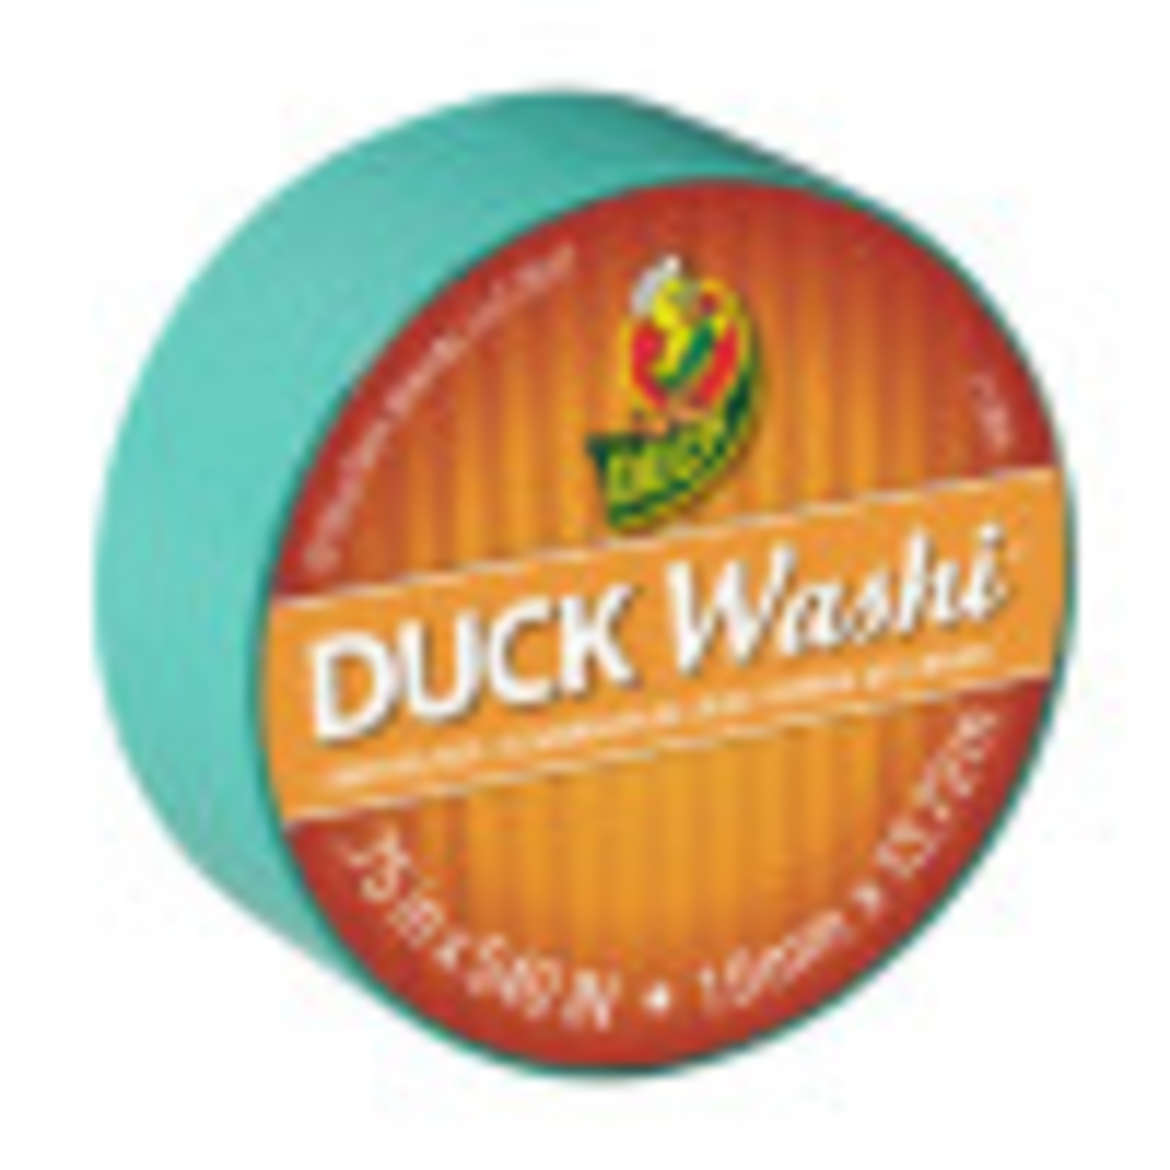 Duck Washi® Crafting Tape - Turquoise, 0.75 in. X 15 yd. Image